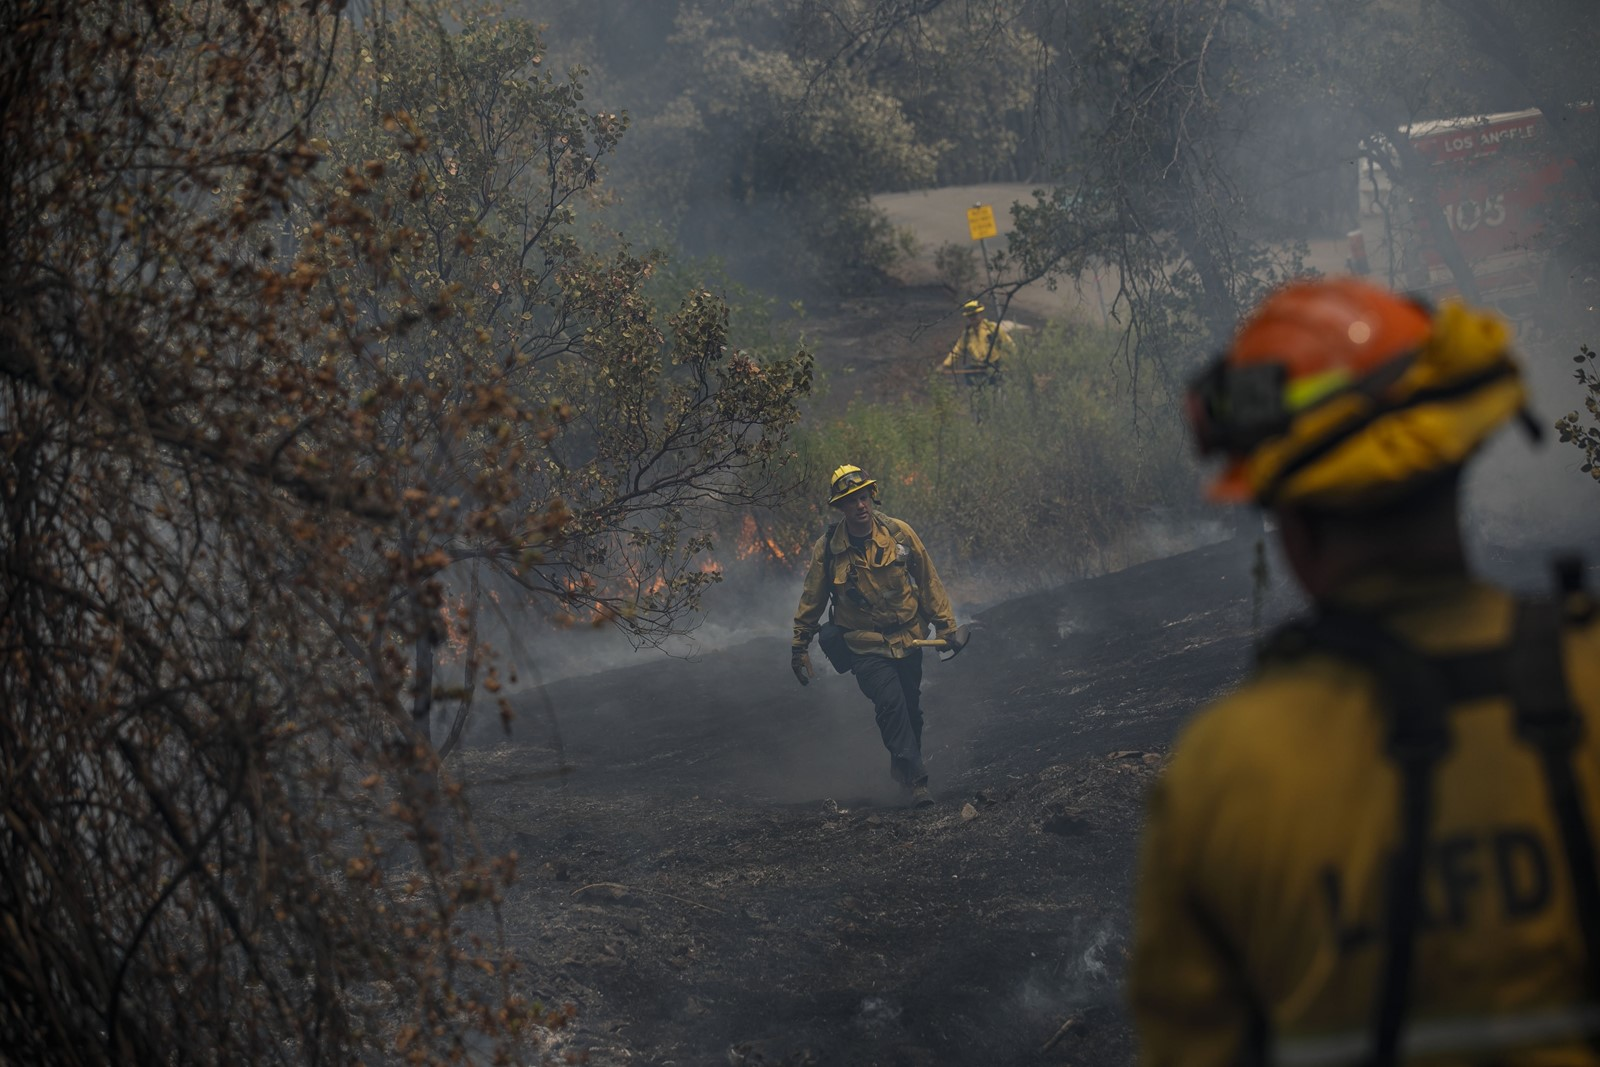 Los Angeles firefighters battle the Carr fire near Redding on Sunday. The blaze has burned more than 95,000 acres, destroyed 874 structures and killed eight people. — Photograph: Marcus Yam/Los Angeles Times.